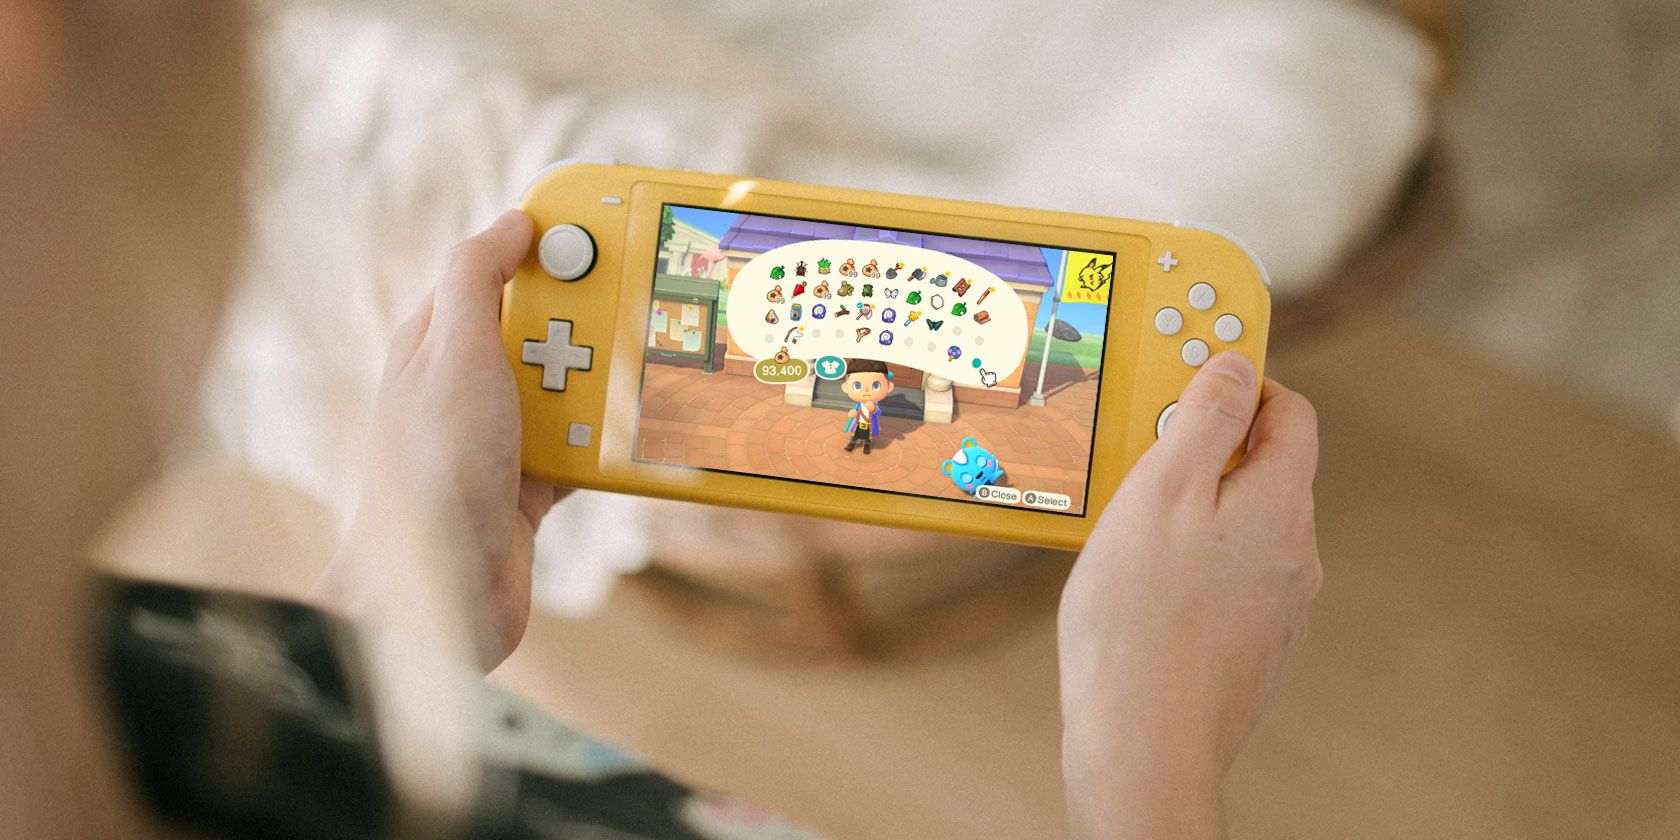 10 Essential Animal Crossing: New Horizons Tips and Tricks